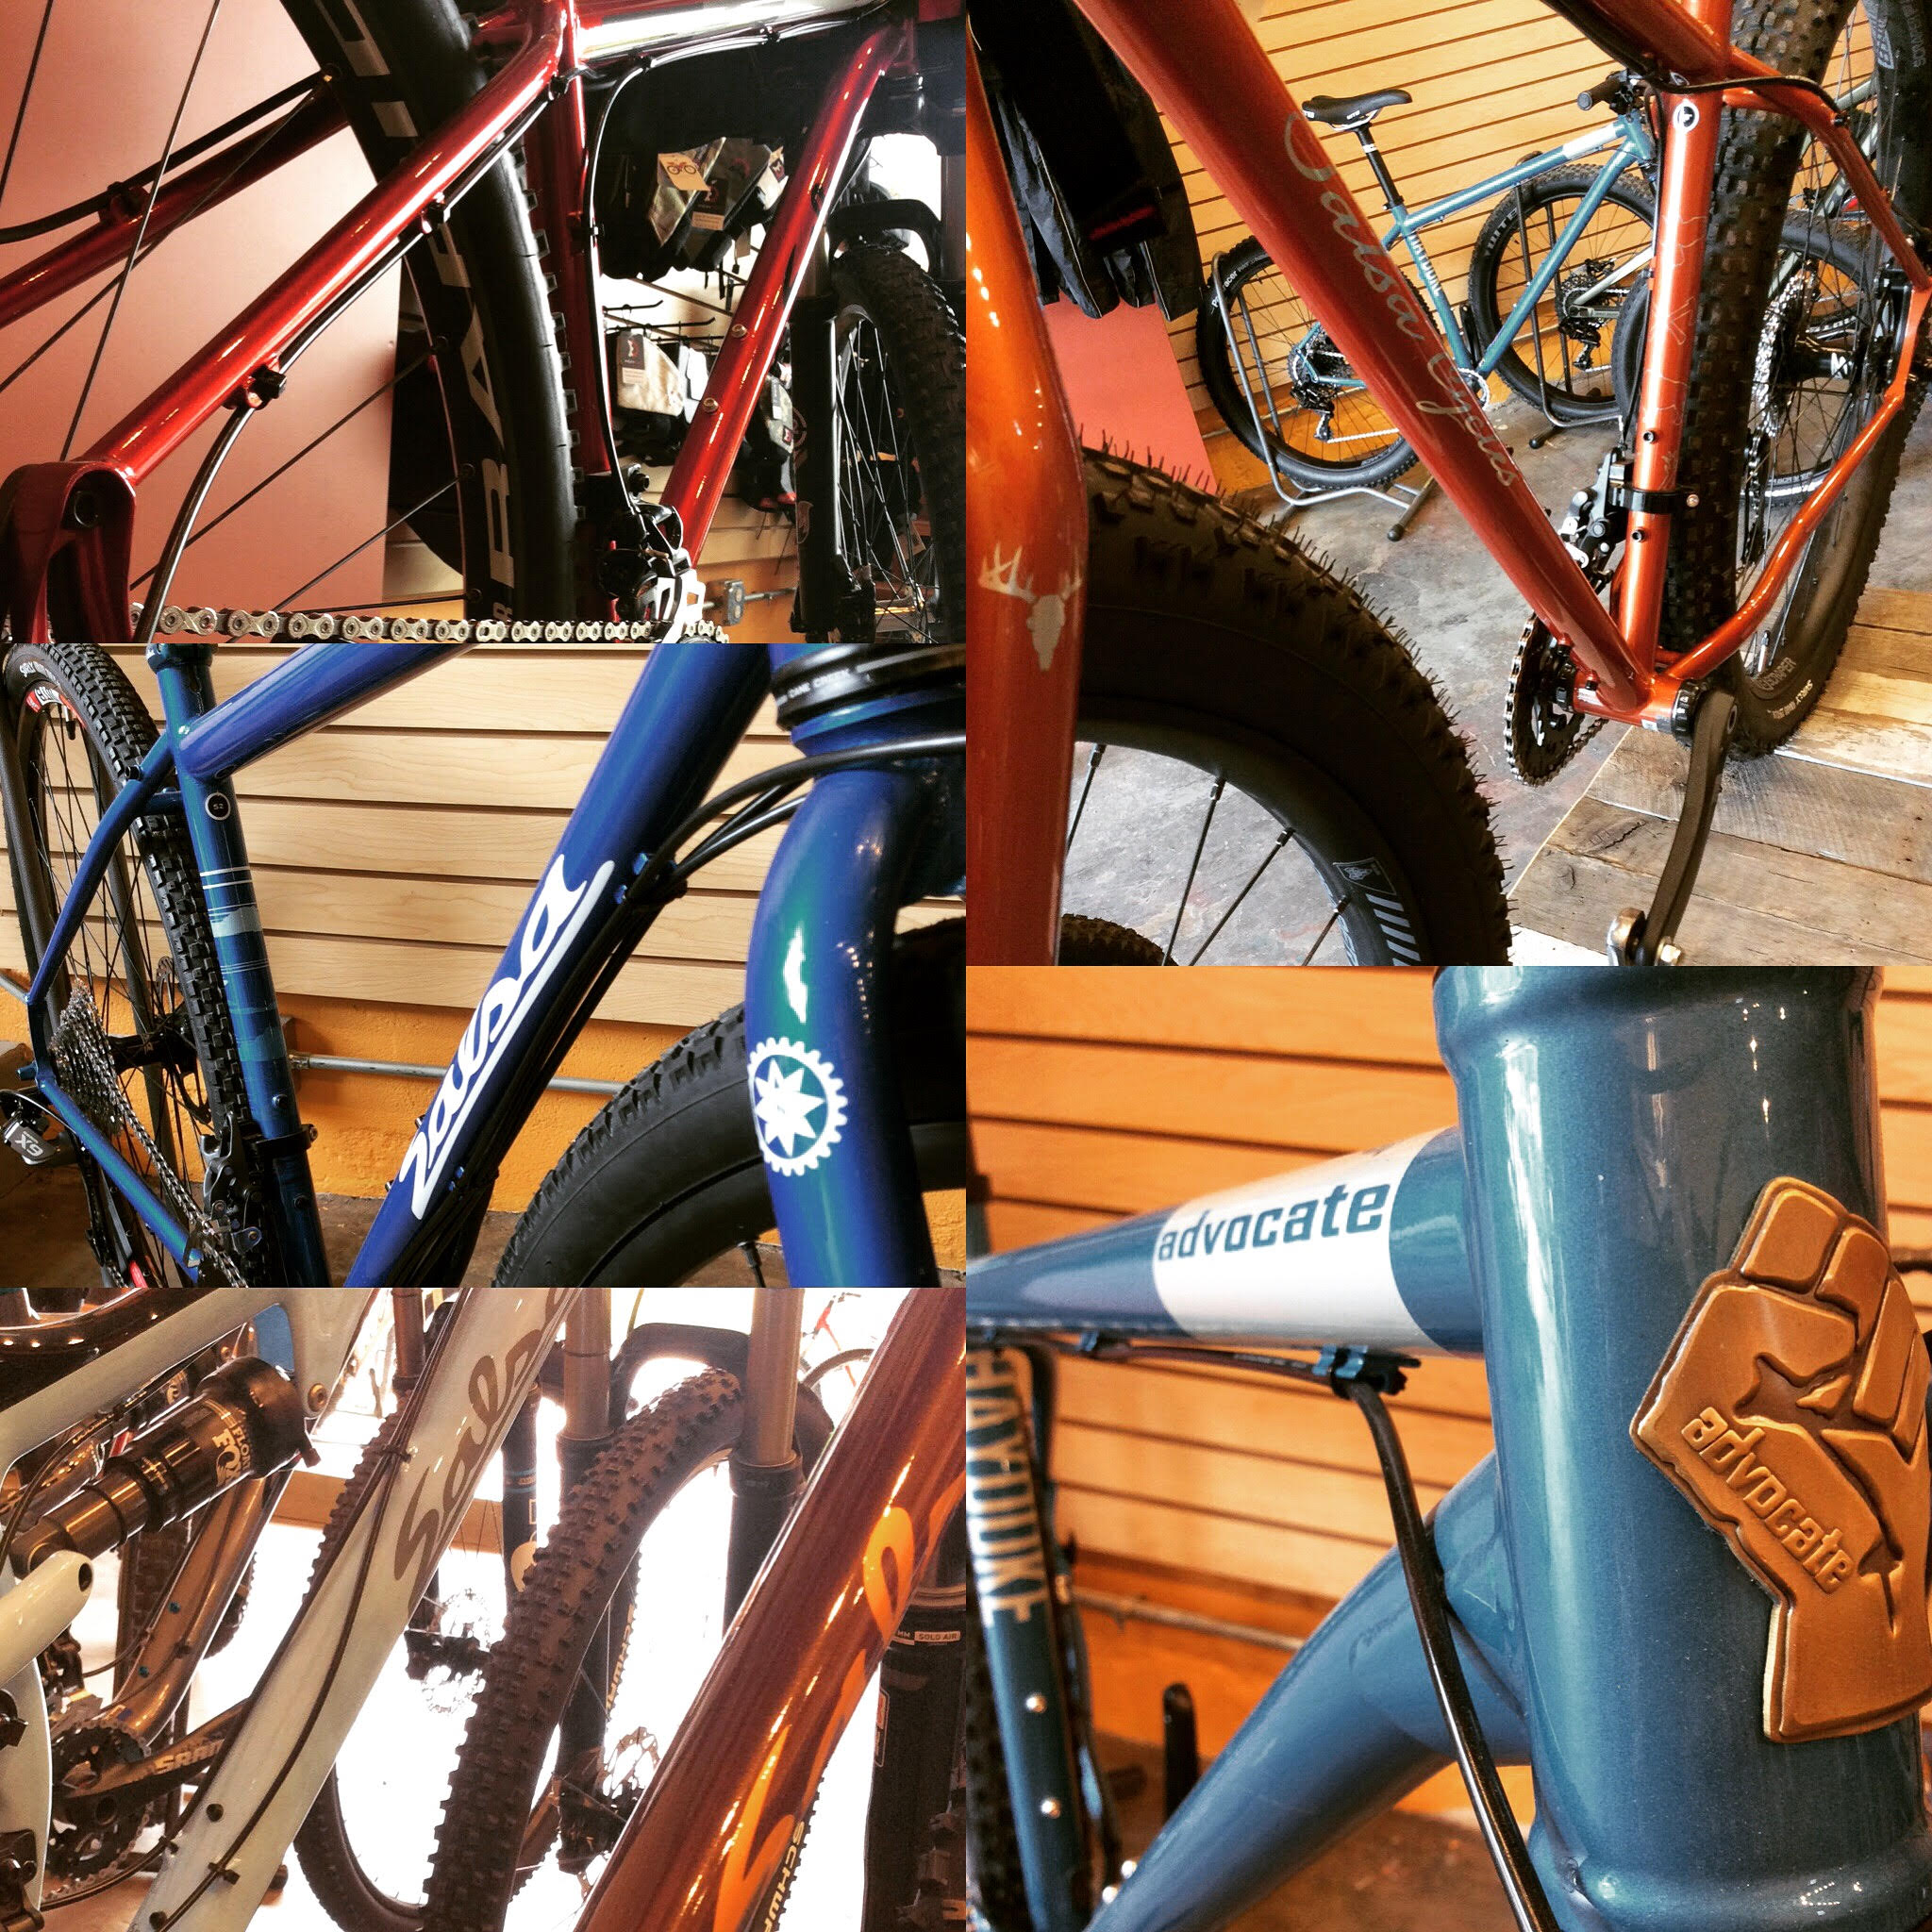 Clockwise from upper left: El Mariachi, Deadwood, Advocate Hayduke, El Mar/Spearfish, Vaya.  All sweet bikes... all on sale.  You score.